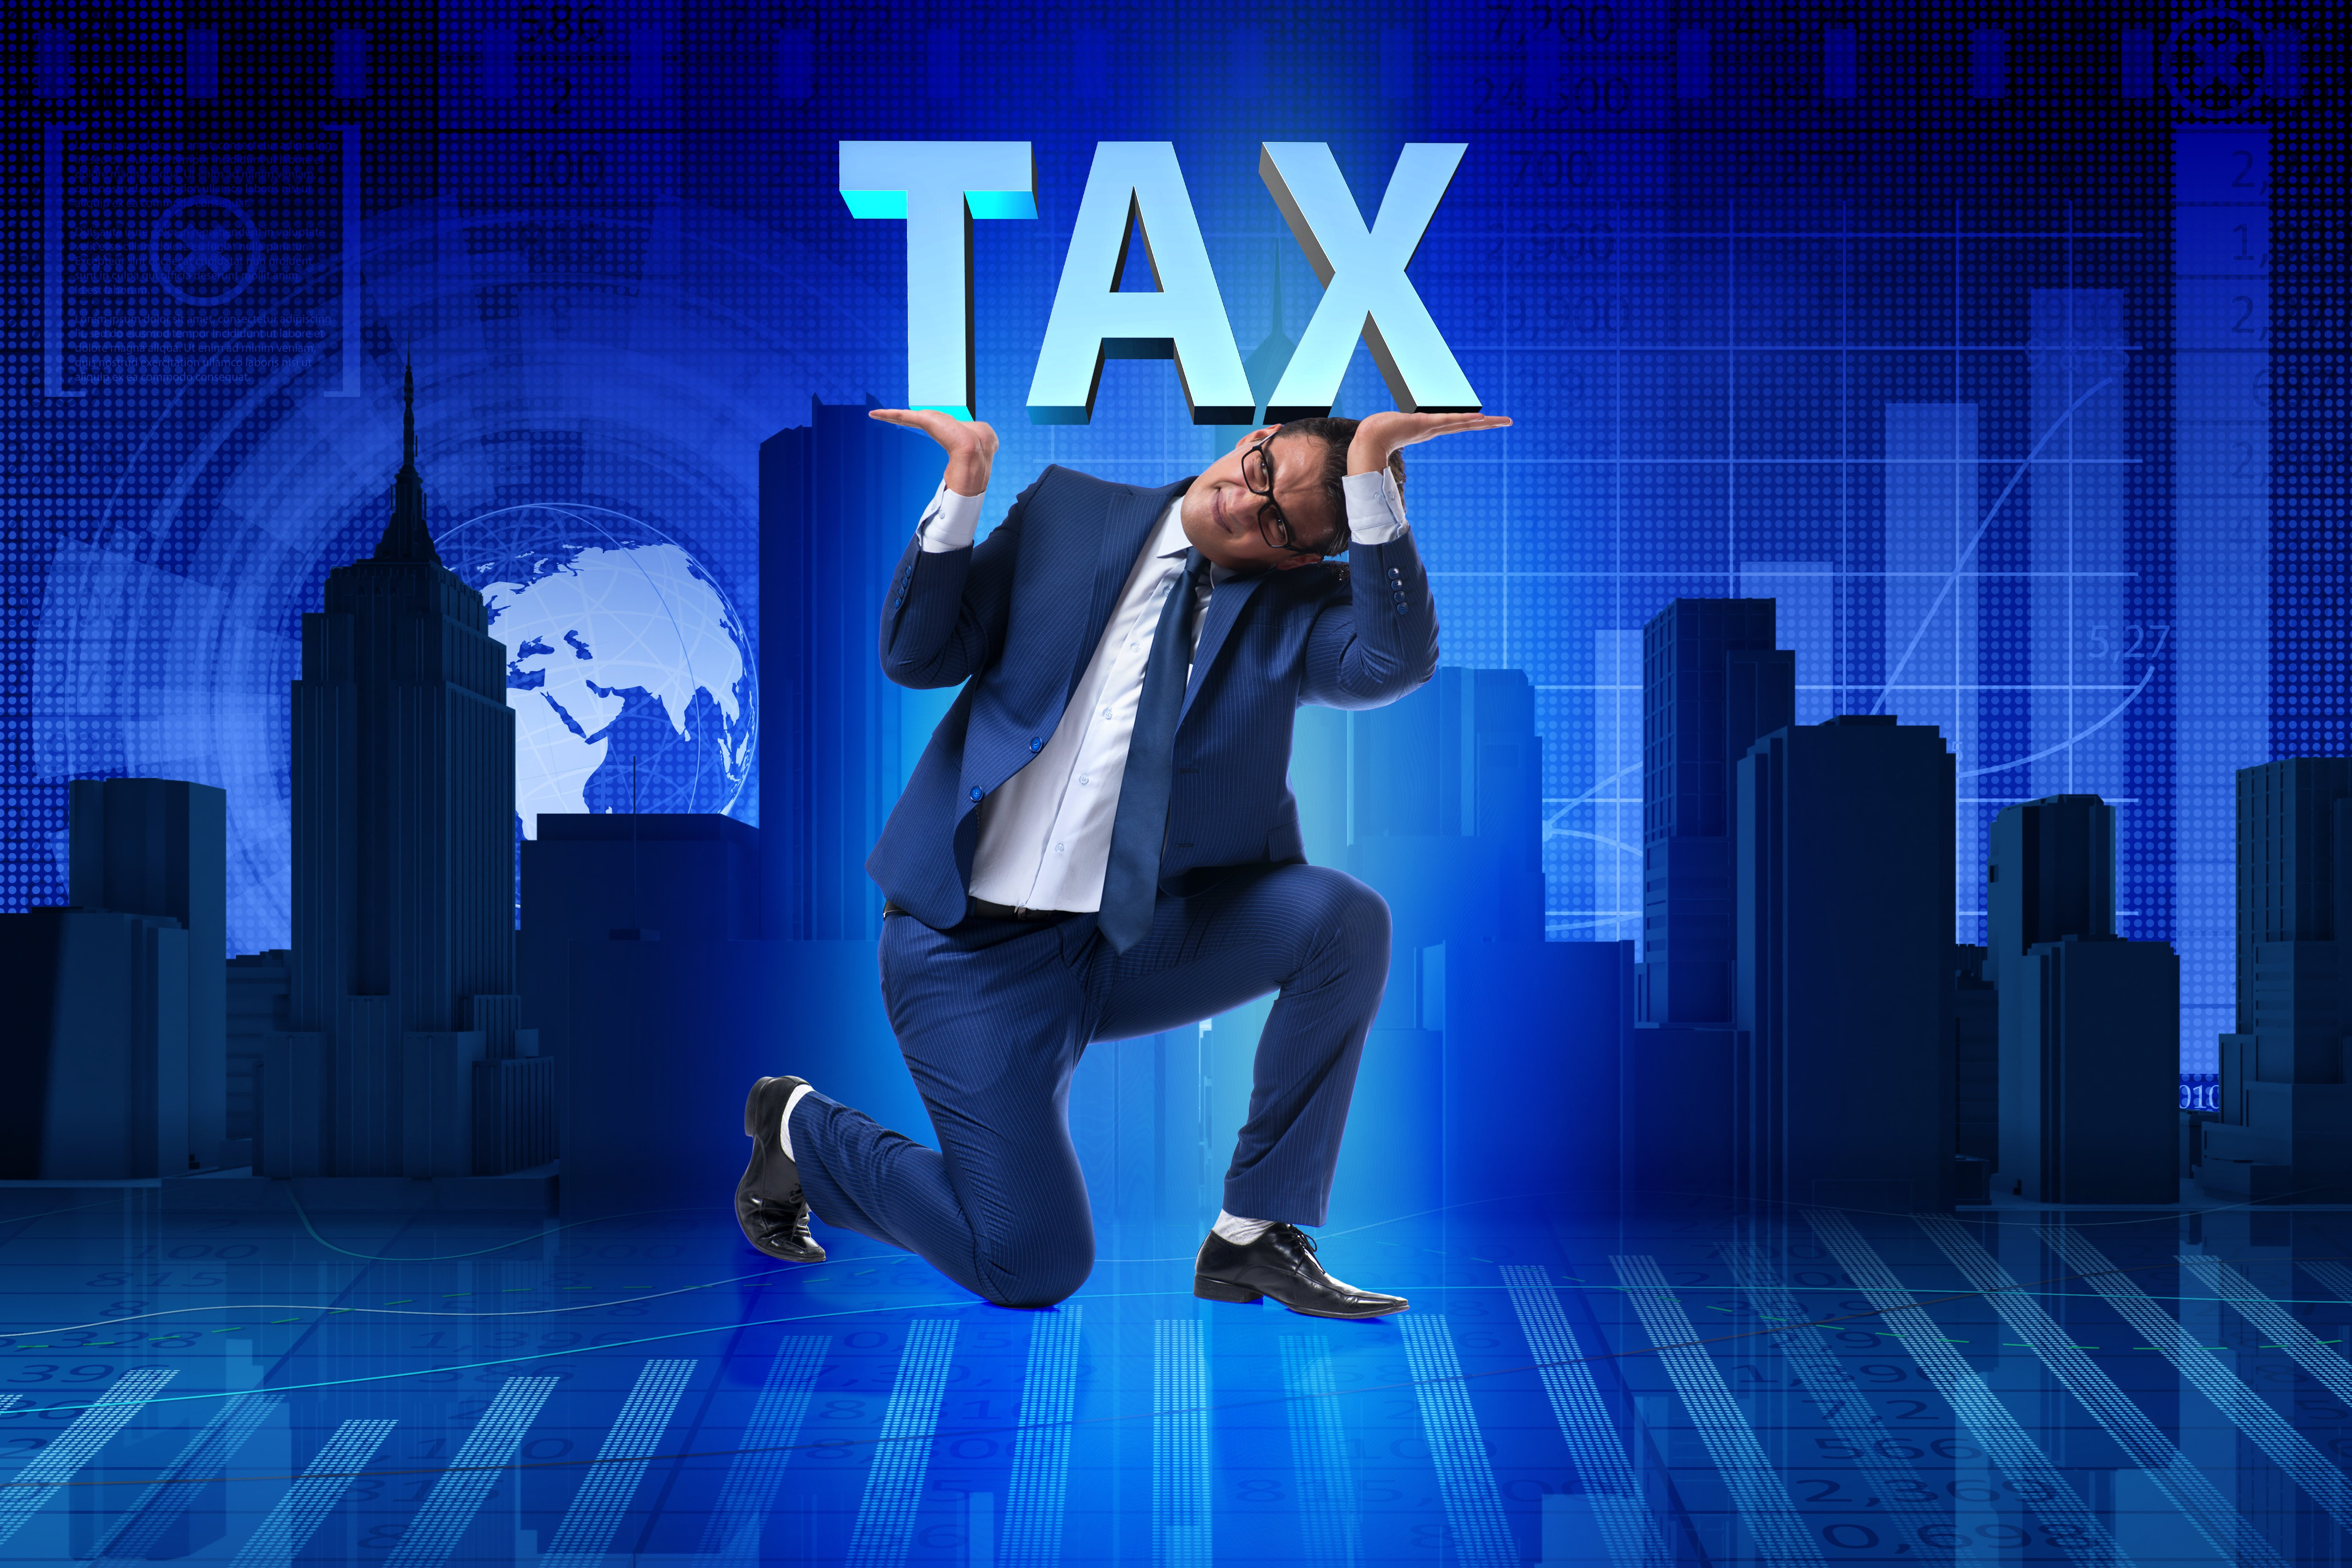 Tax Hacks 2019: 6 Ways to Get Your Taxes Done for Free